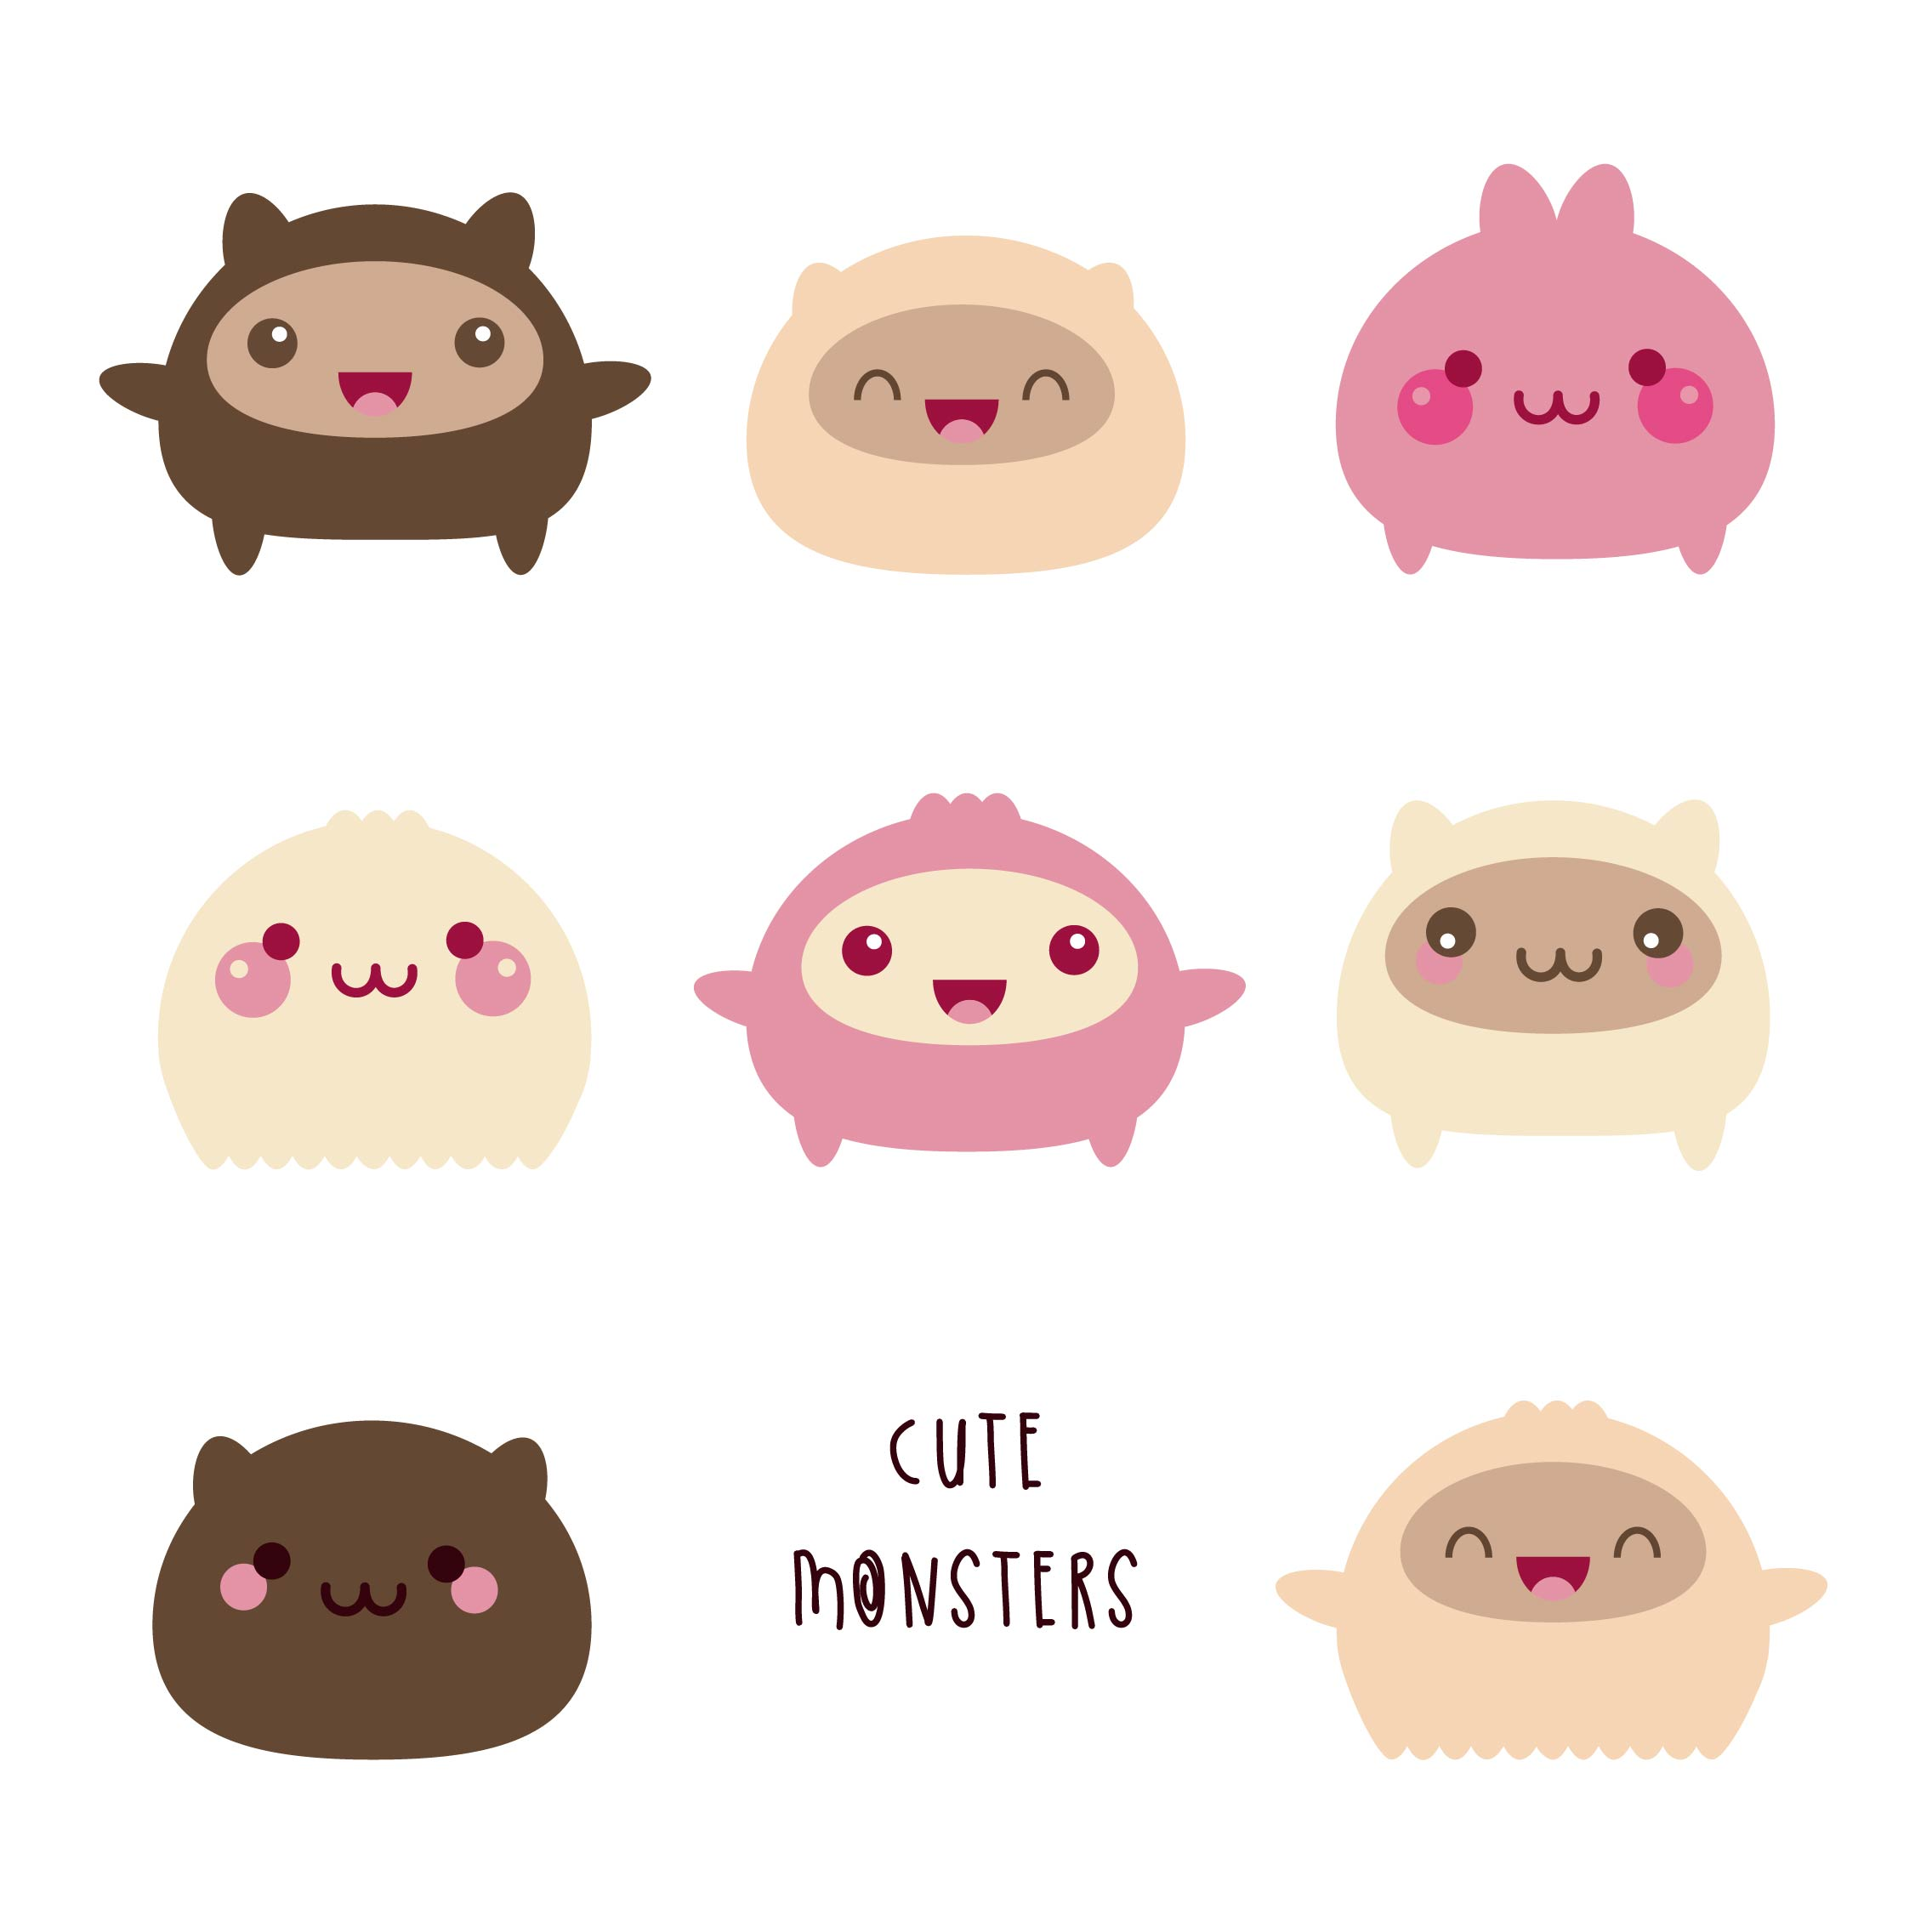 CuteMonsters